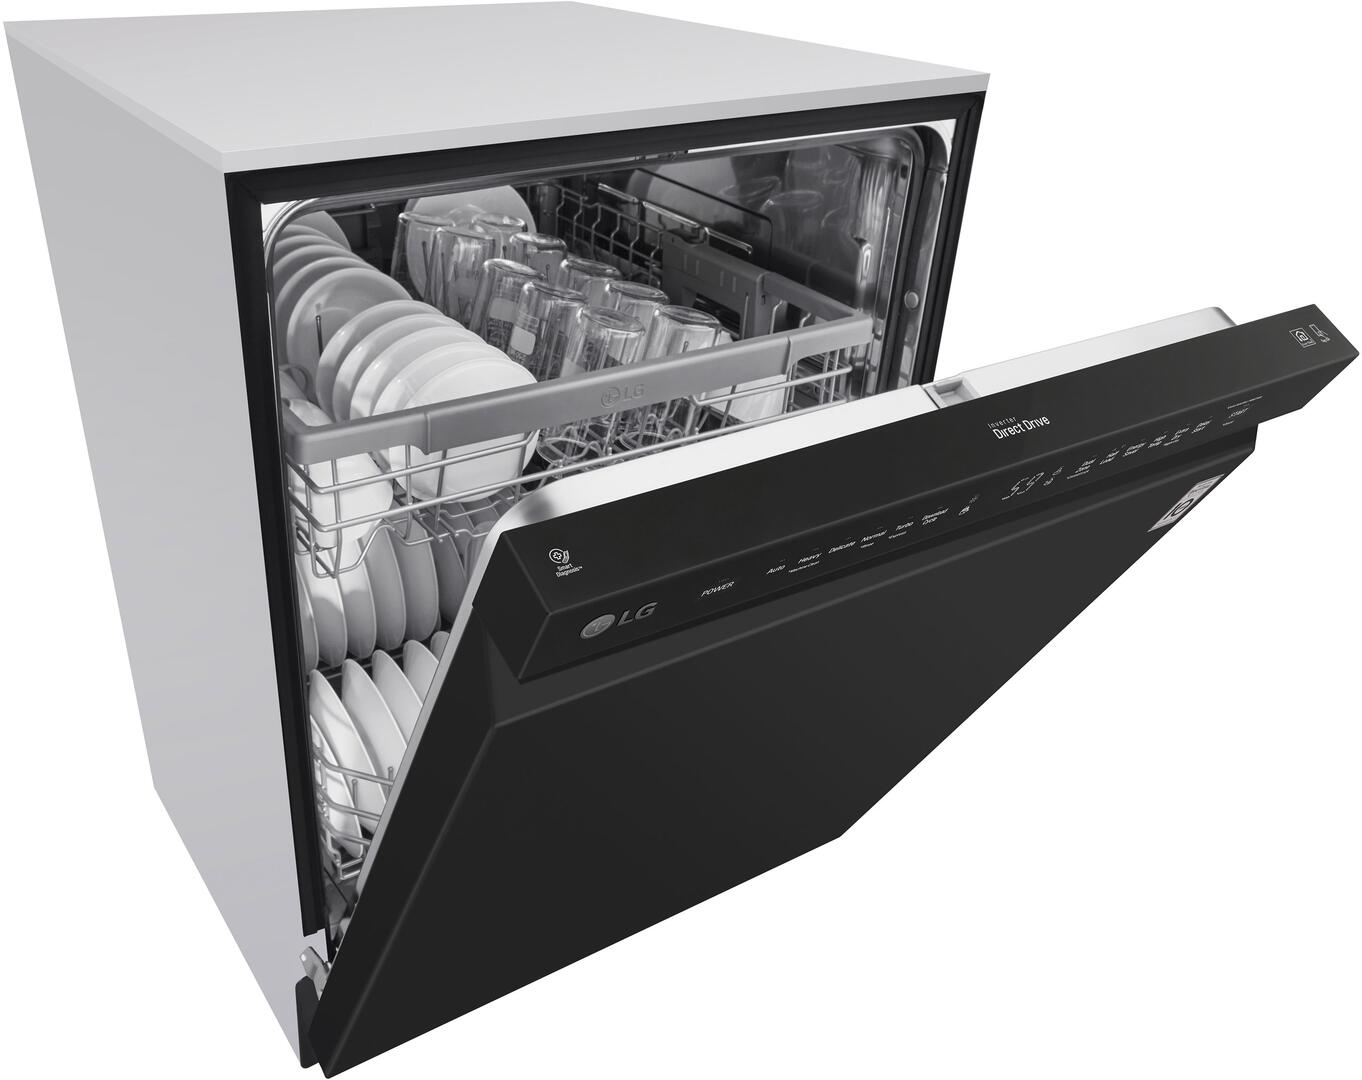 Lg Ldf5545st 24 Inch Built In Full Console Dishwasher With